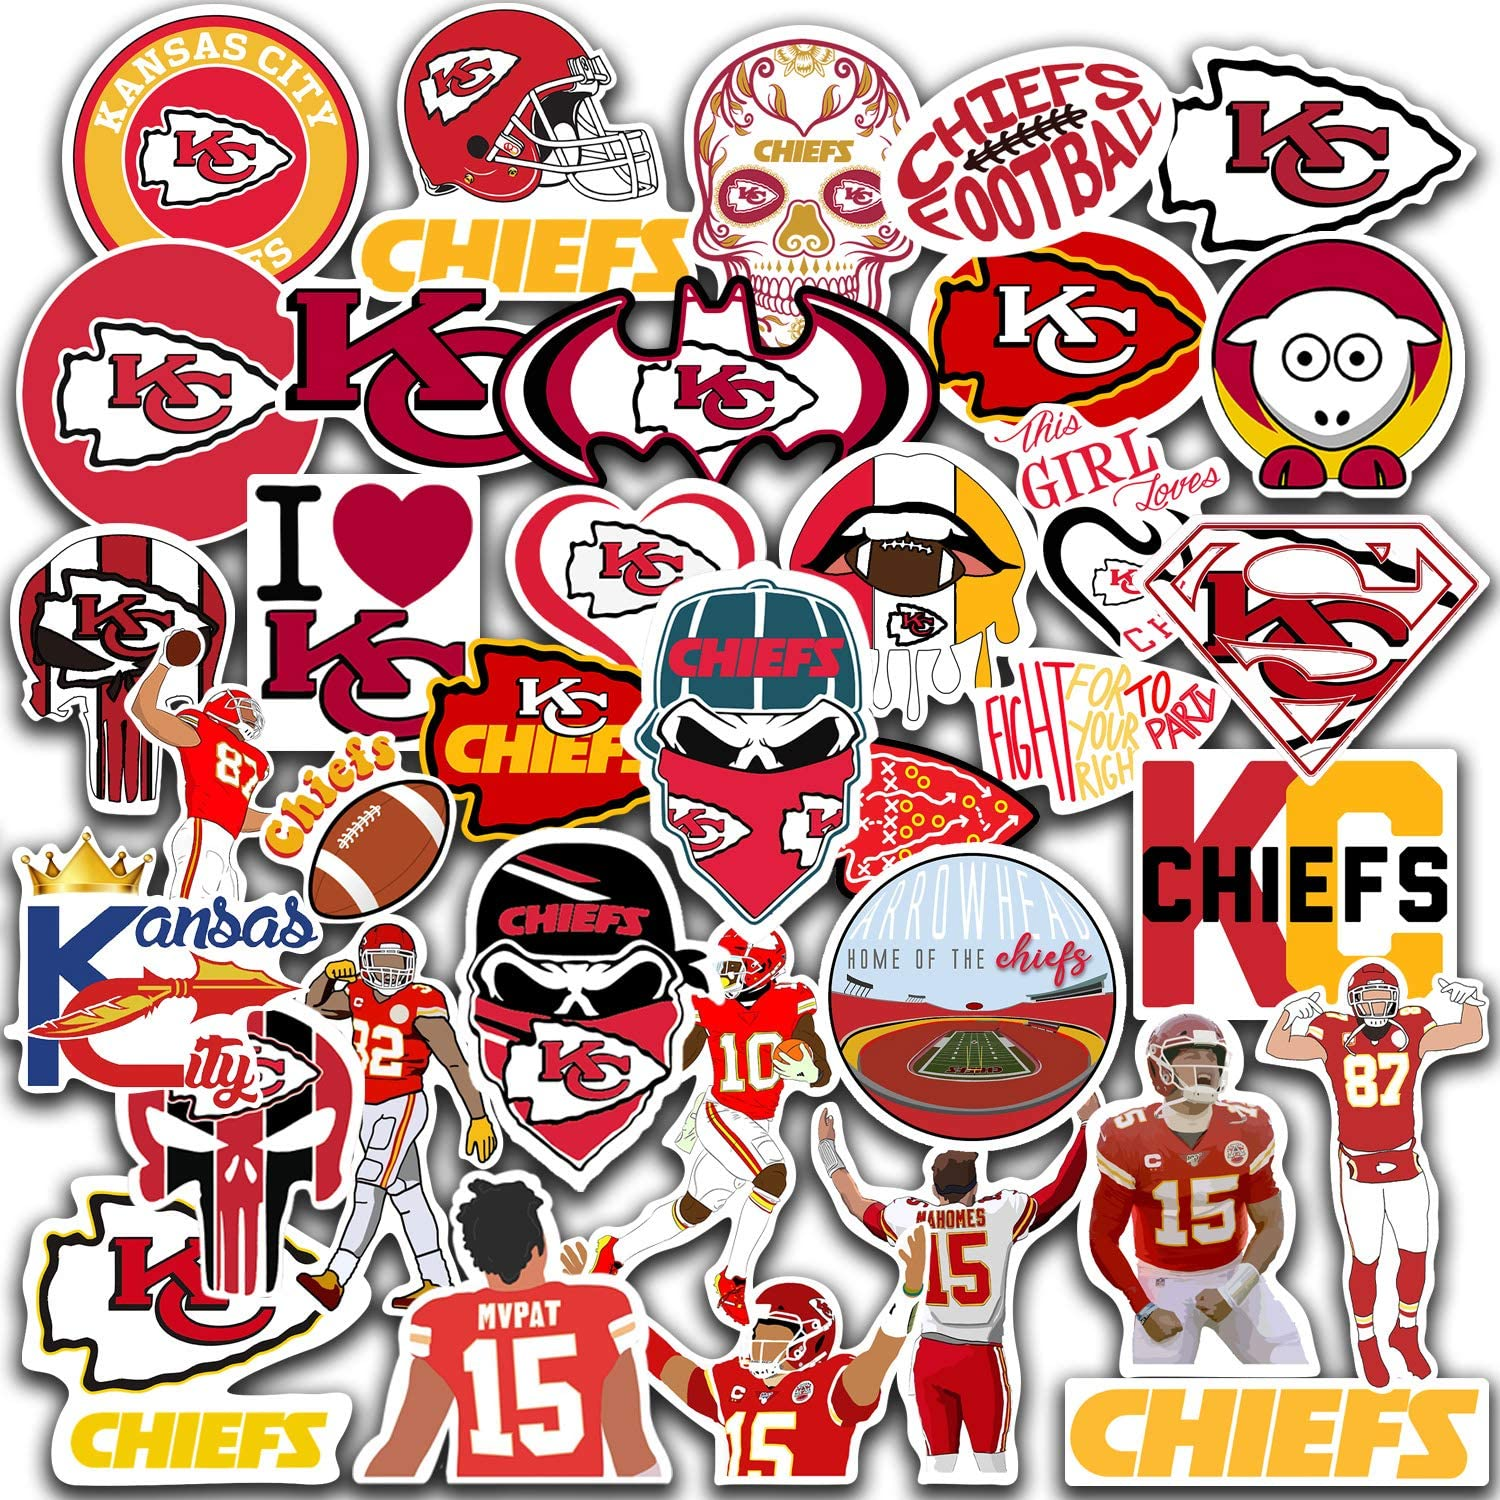 Kansas City Vinyl Chiefs Stickers Pack of 40 pcs Green Bay Vinyl Packers Stickers Pack of 30 pcs